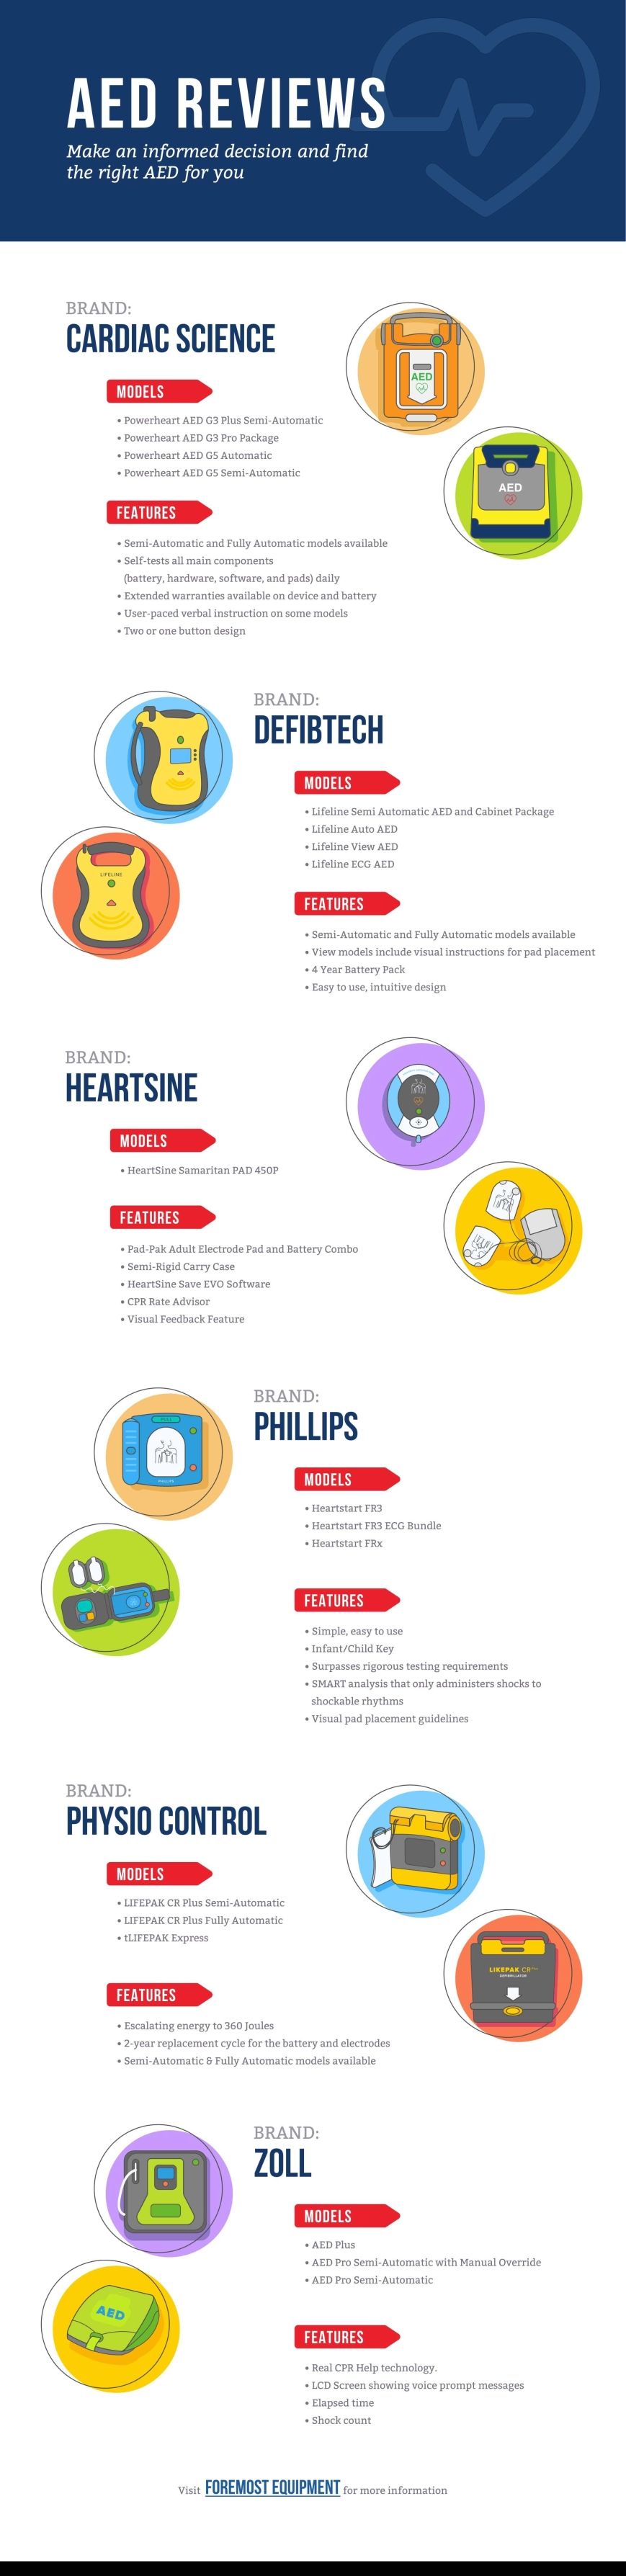 aed-reviews-infographic-1.jpg